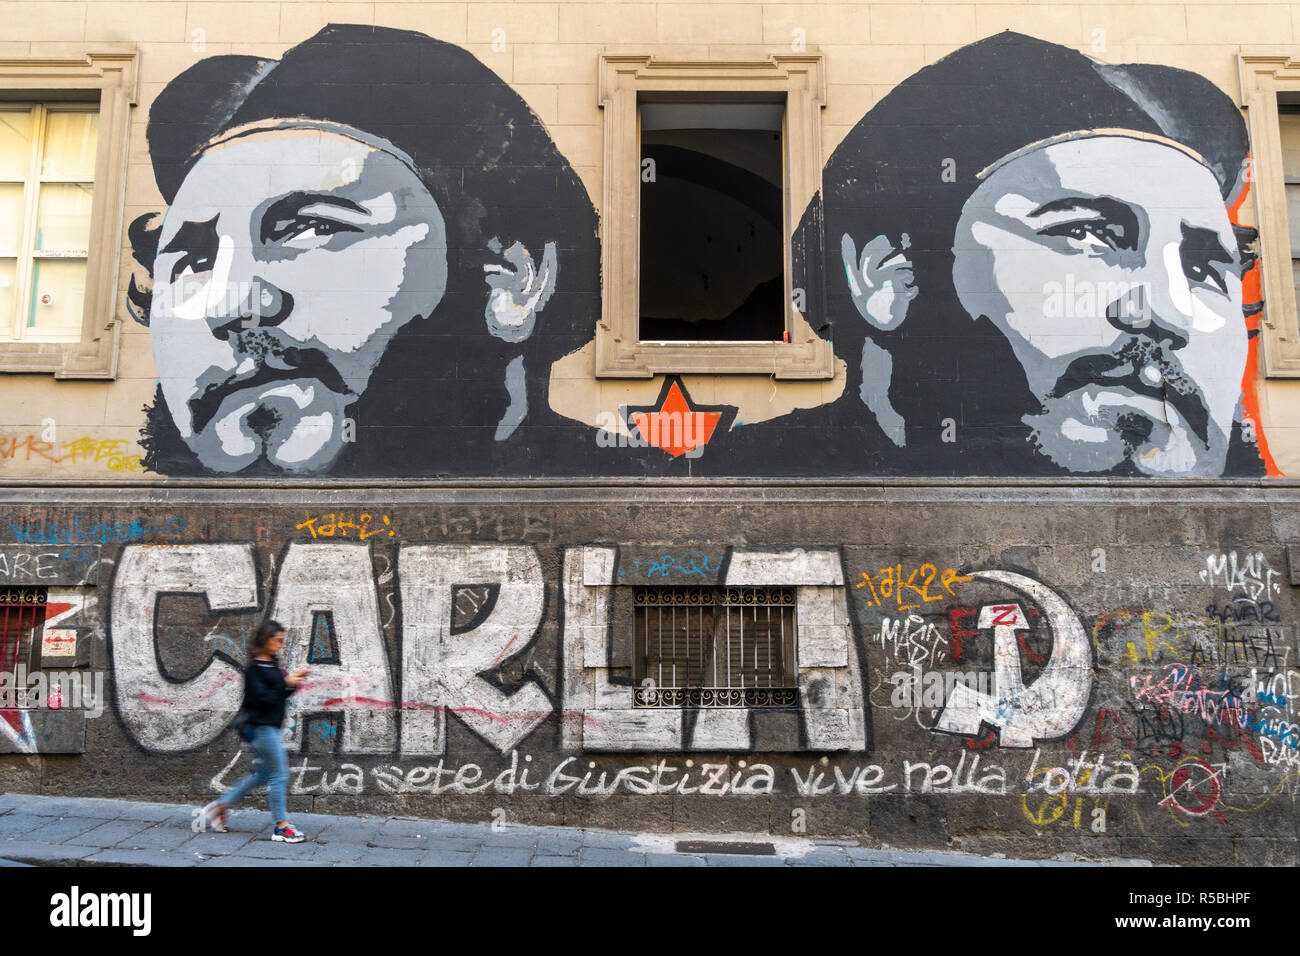 Street art with a communist leaning depicting Fidel Castro, on a building in the Via Mezzocannone, in the 'Centro Storico',  Historic Center of Naples - Stock Image